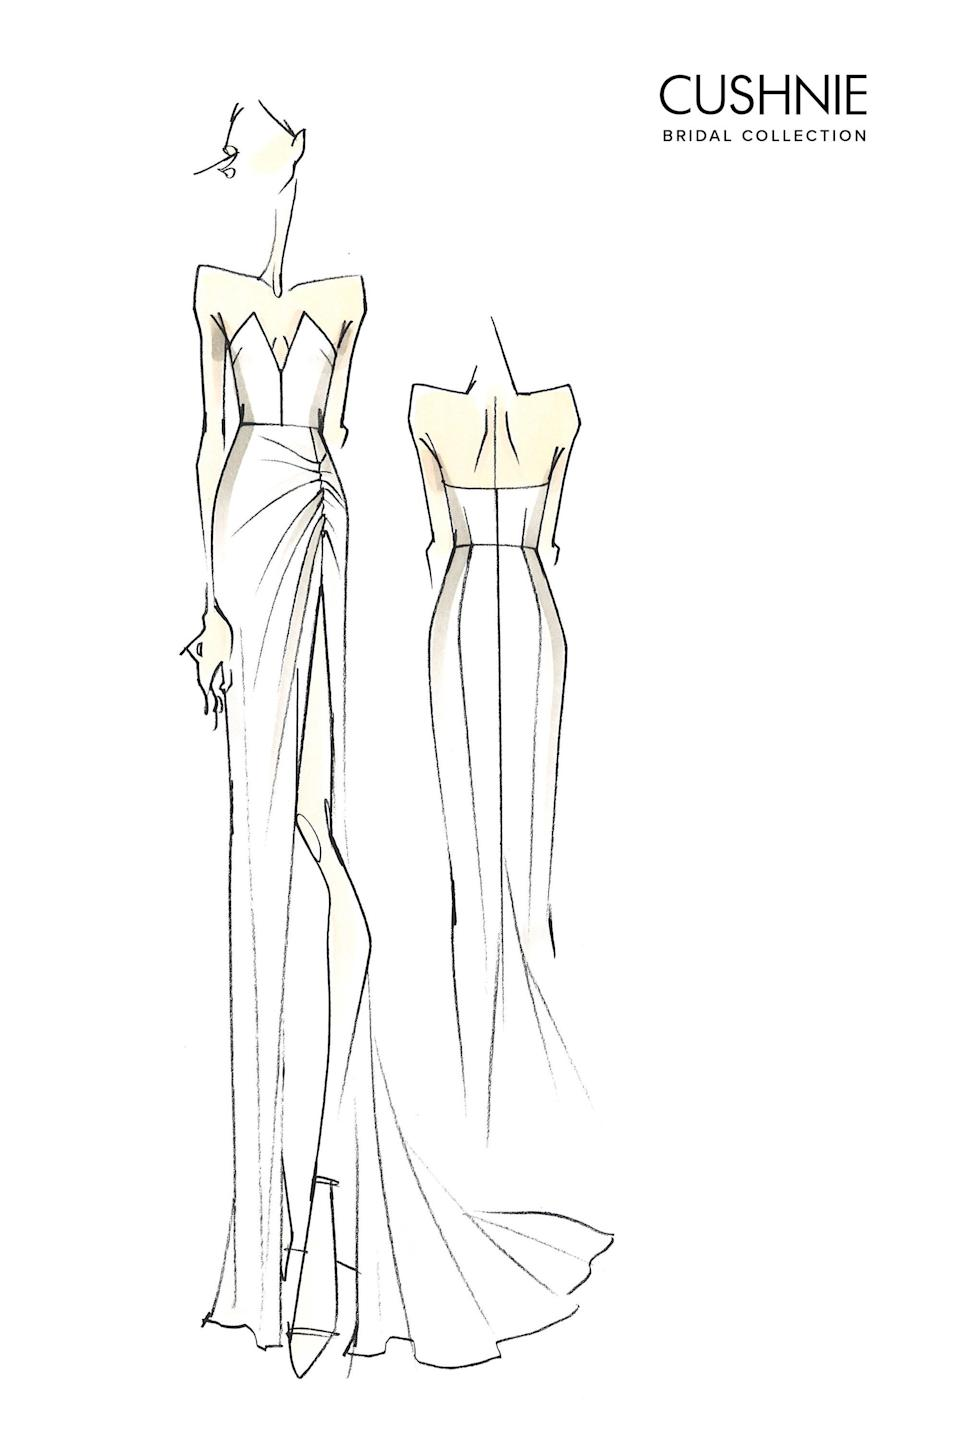 Designer Carly Cushnie is taking the reins of what was formerly Cushnie et Ochs, which also means a new collection of chic, sculptural wedding gowns.